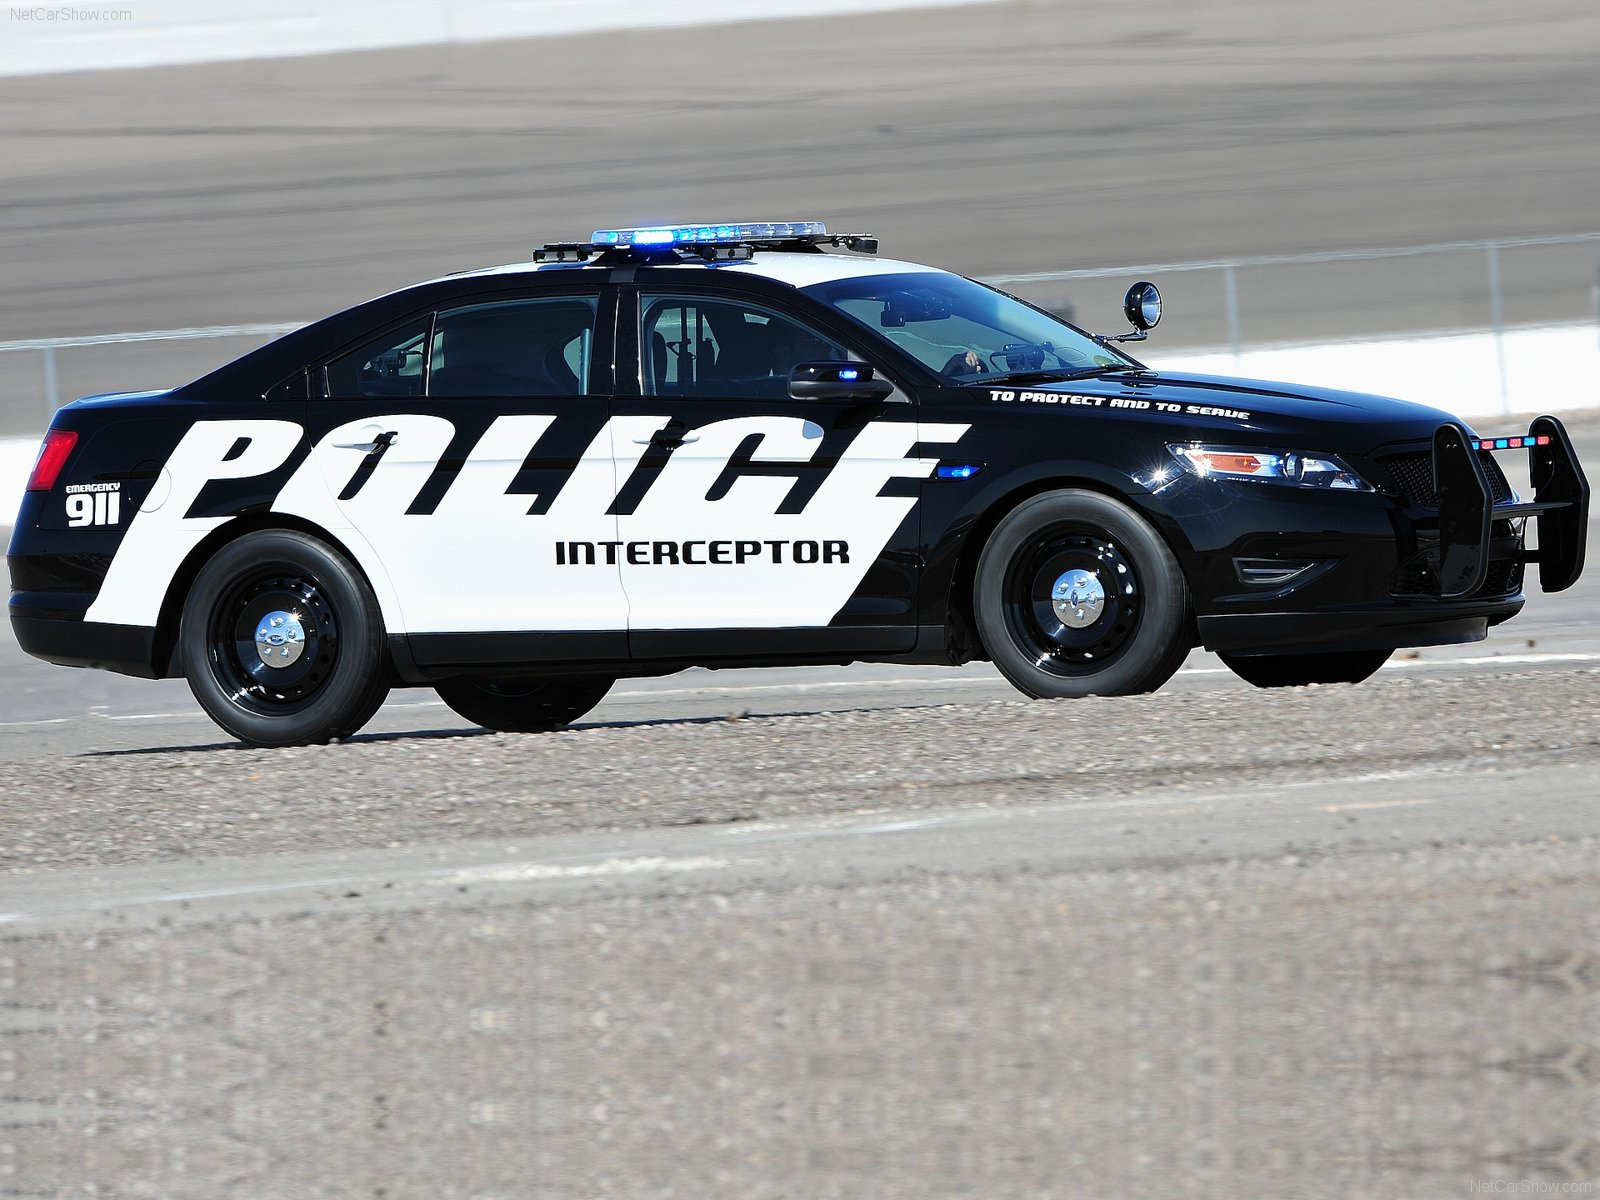 Ford Police Interceptor Concept X Wallpaper on 05 Dodge Magnum Rt Specs